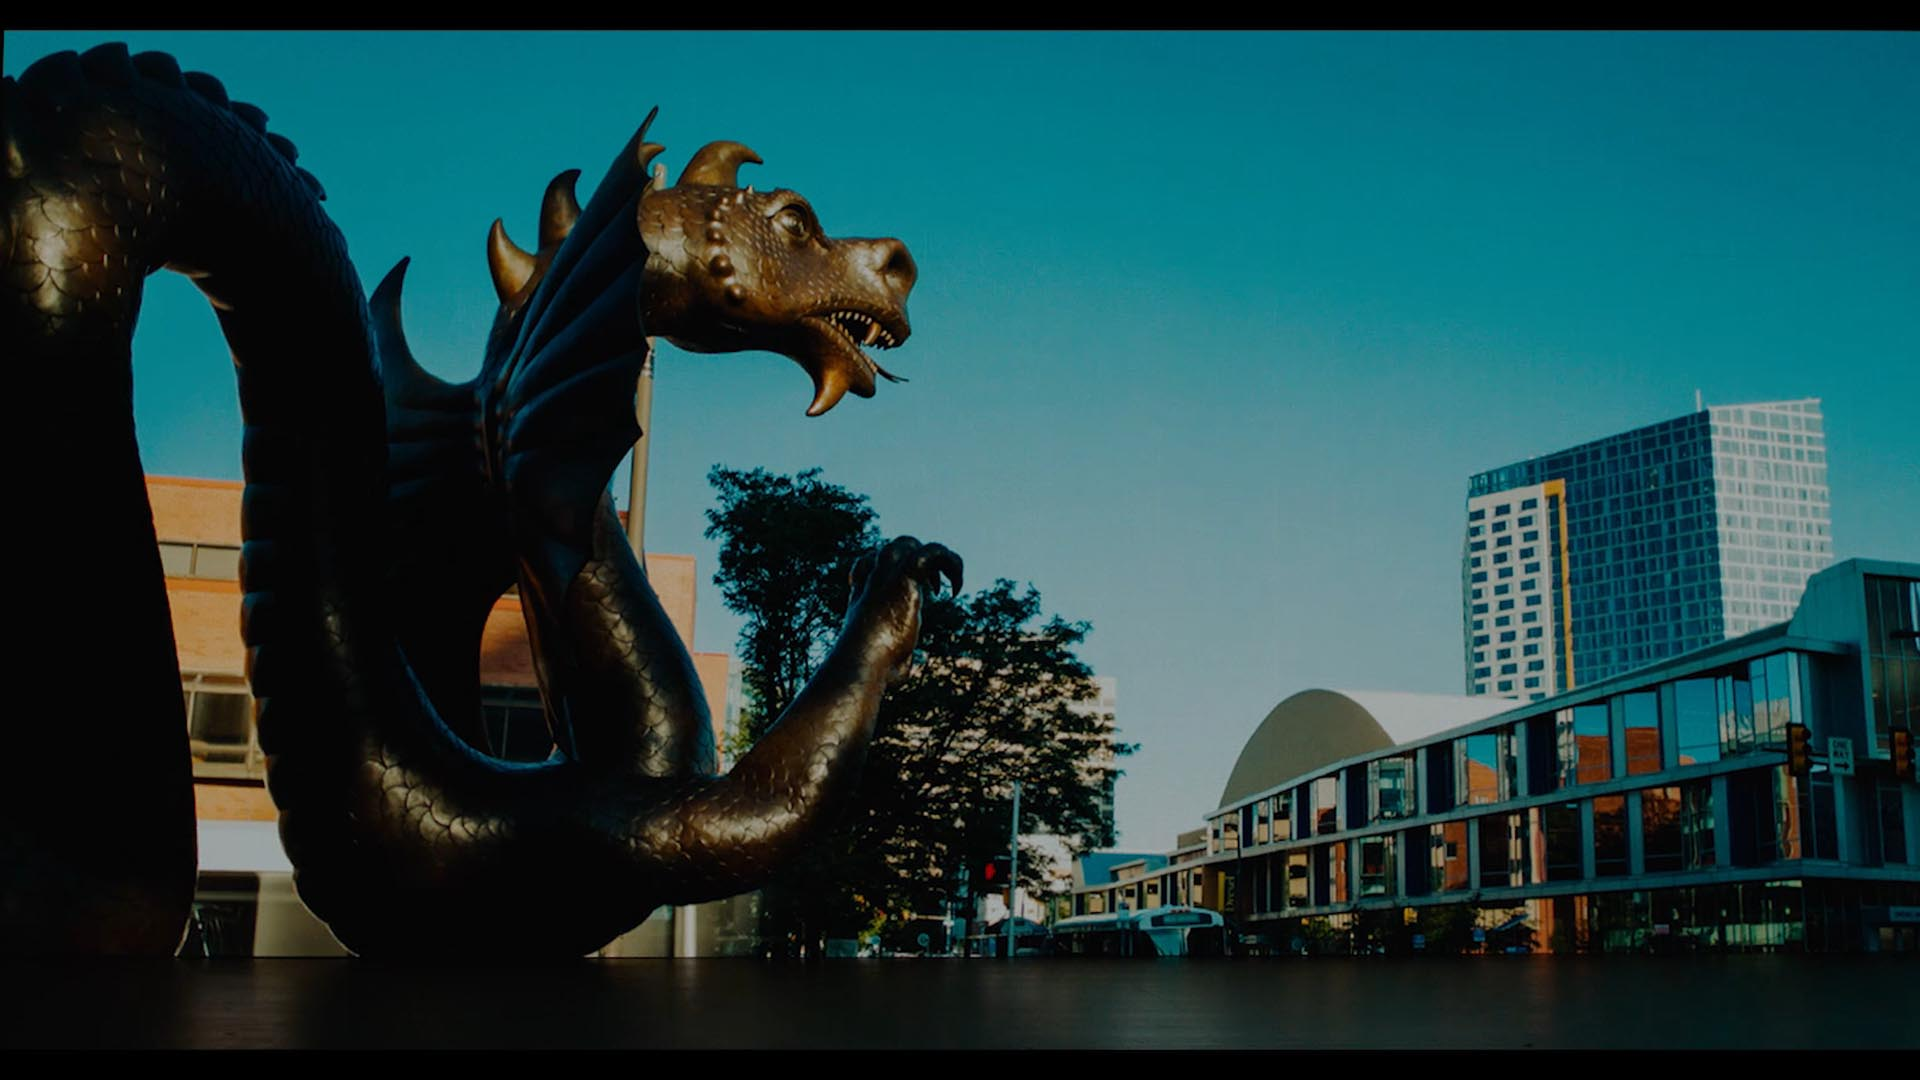 Dragon statue with philly skyline